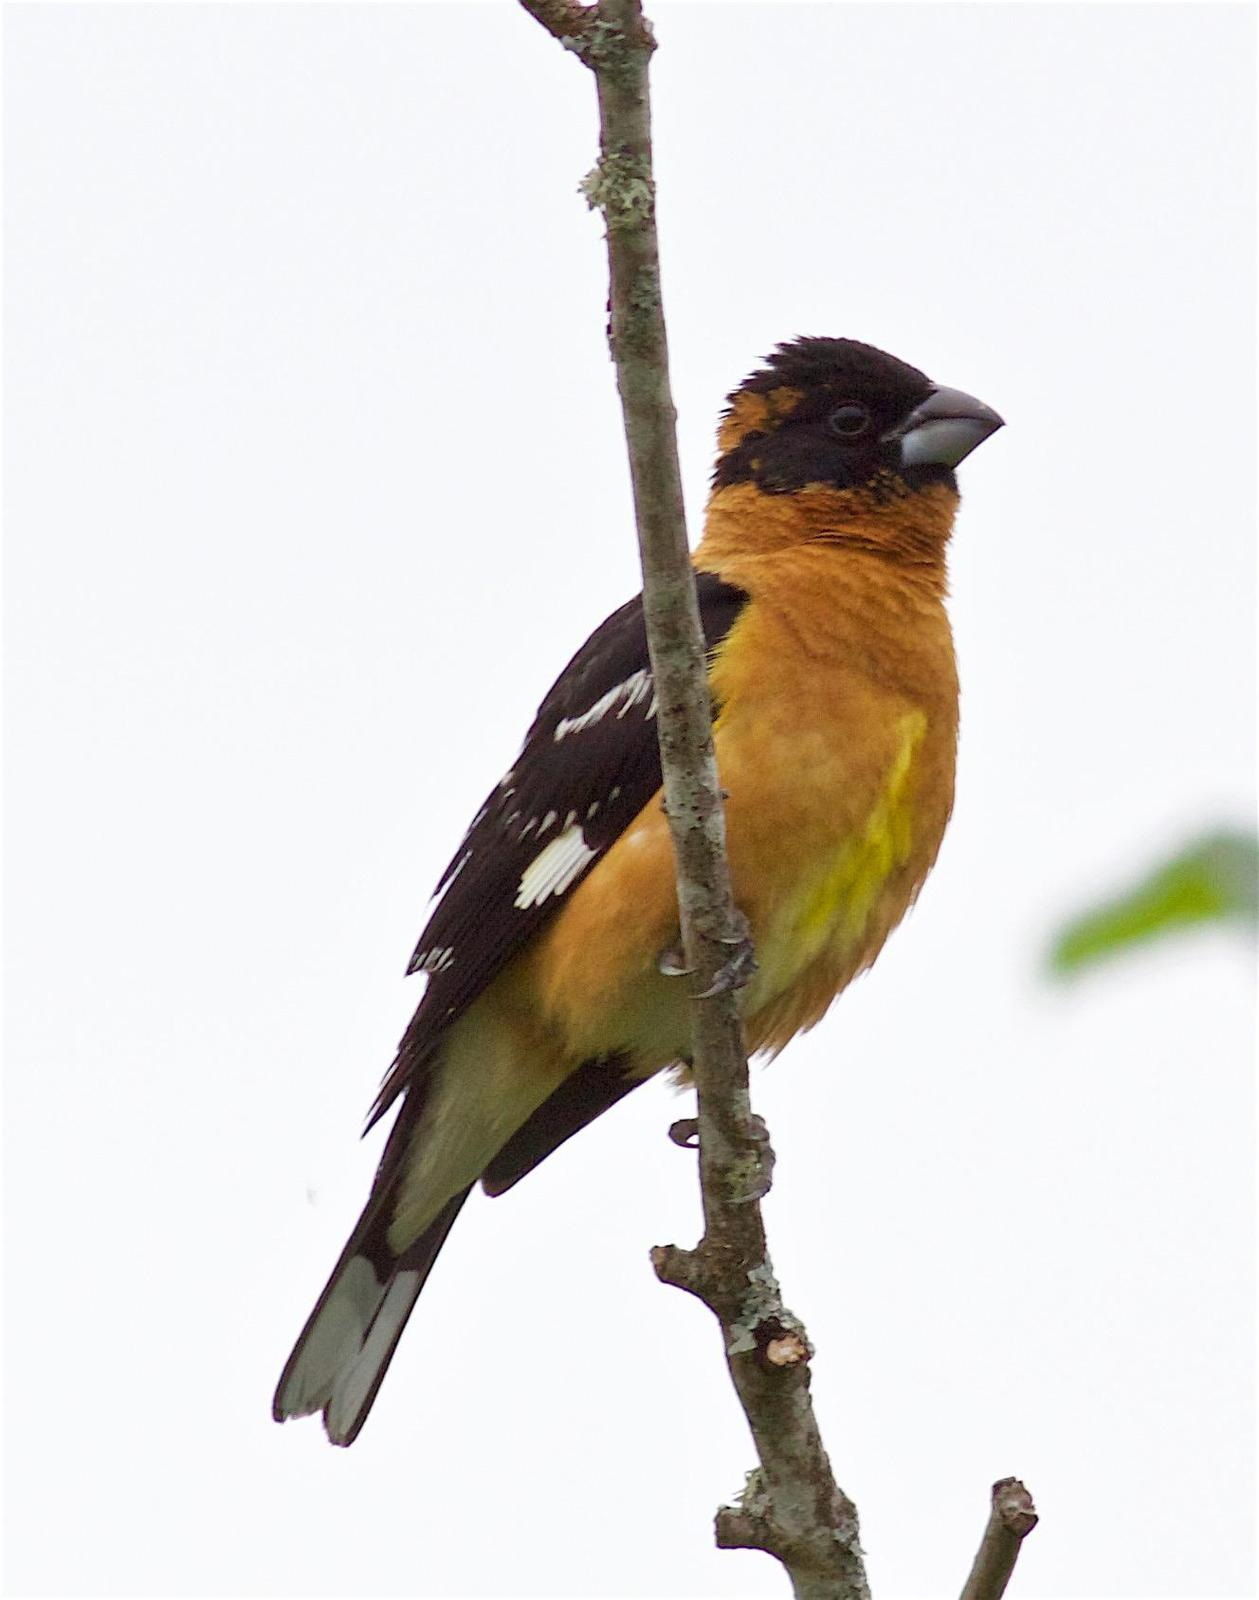 Black-headed Grosbeak Photo by Kathryn Keith